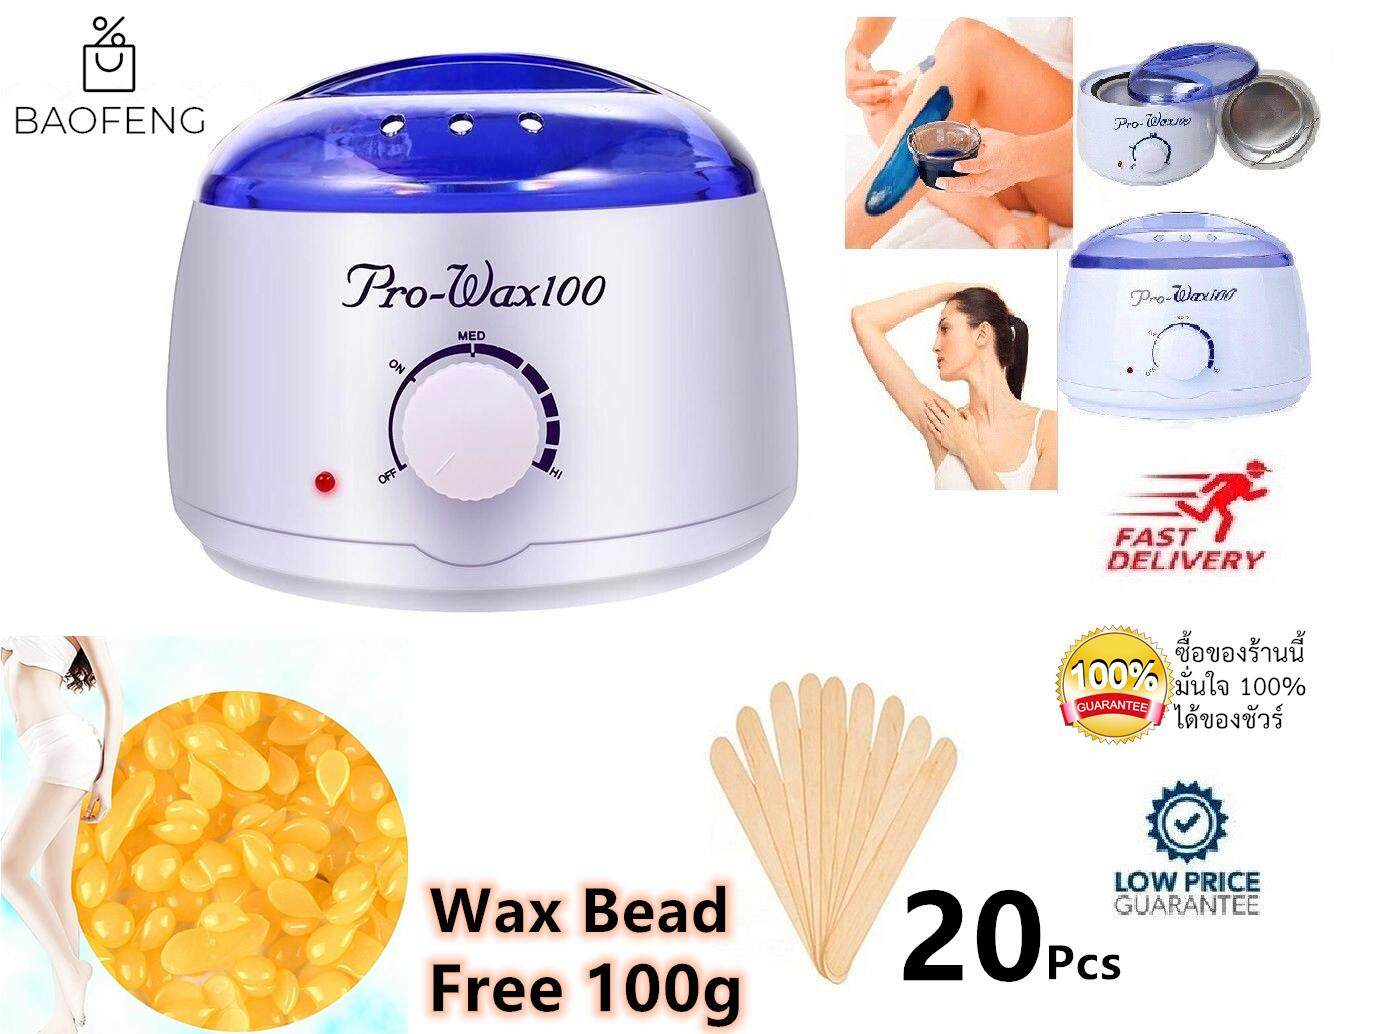 ProWax Wax Heater Machine Wax Warmer Wax Beans ขี้ผึ้งละลาย 100g/3.5oz Granules Hot Film Free-paper Hard Wax Bead + Adjustable Temperature Wax Heater + 20pcs Sticks for Face Underarms Arm Leg Bikini